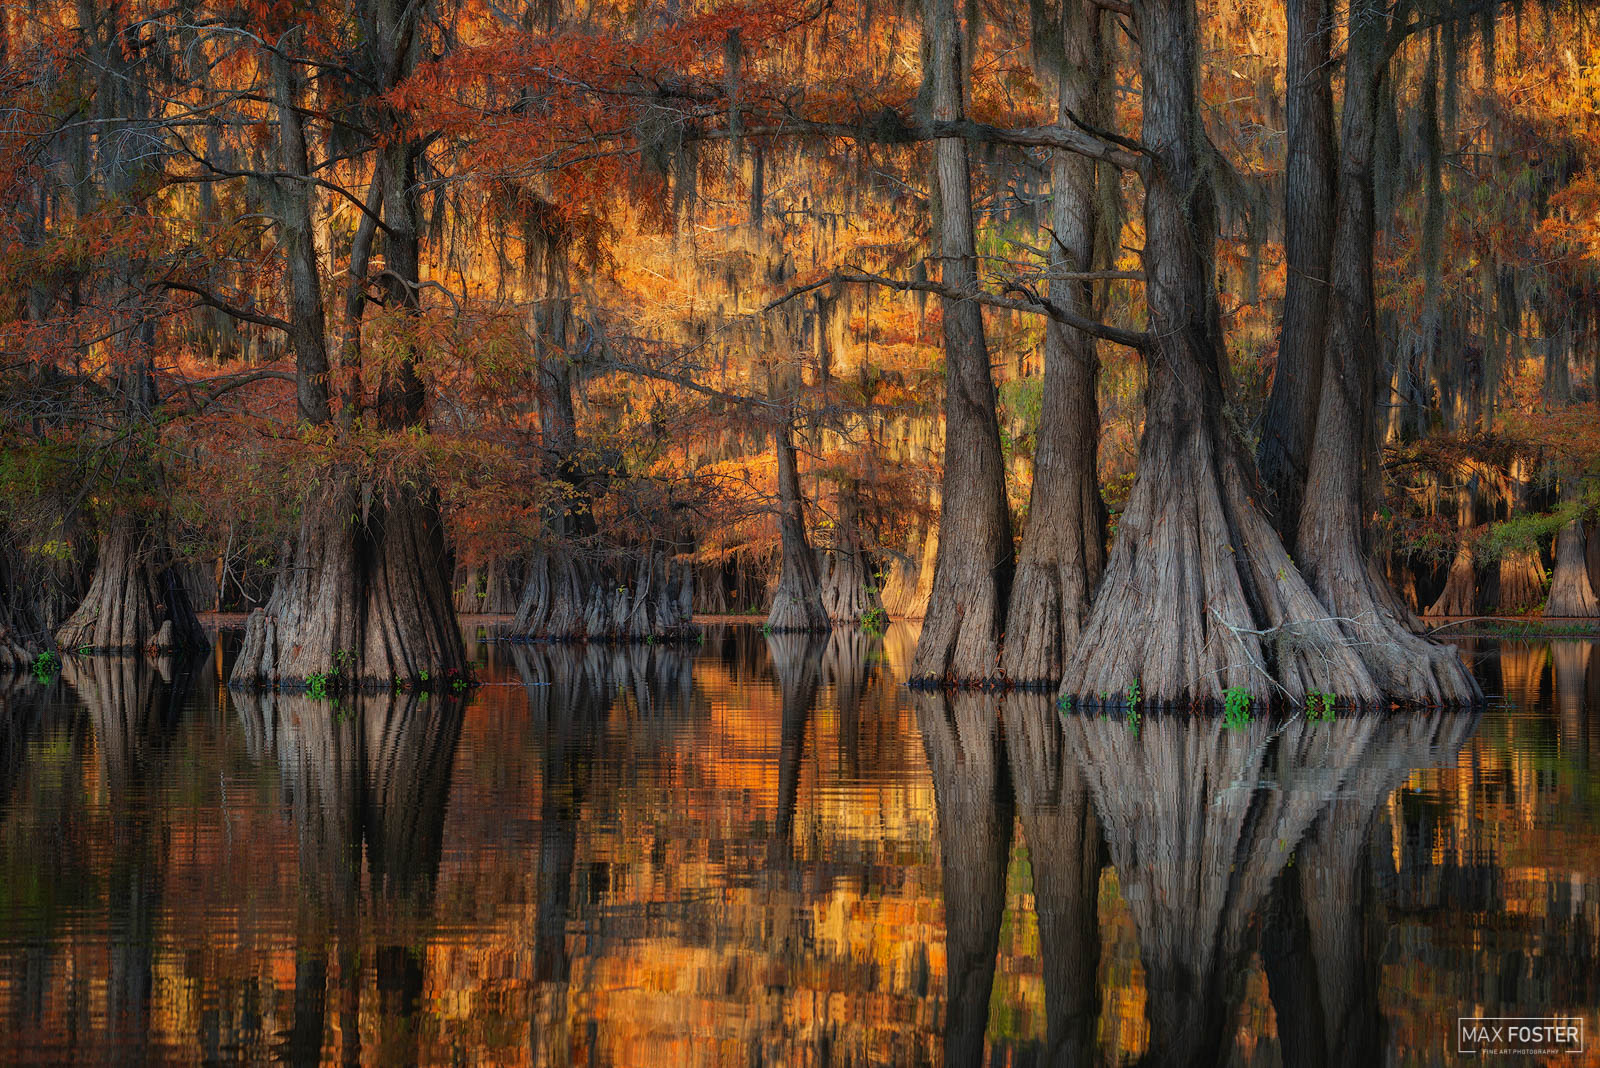 Caddo Lake, Texas, Golden Glory, Bald Cypress, photo